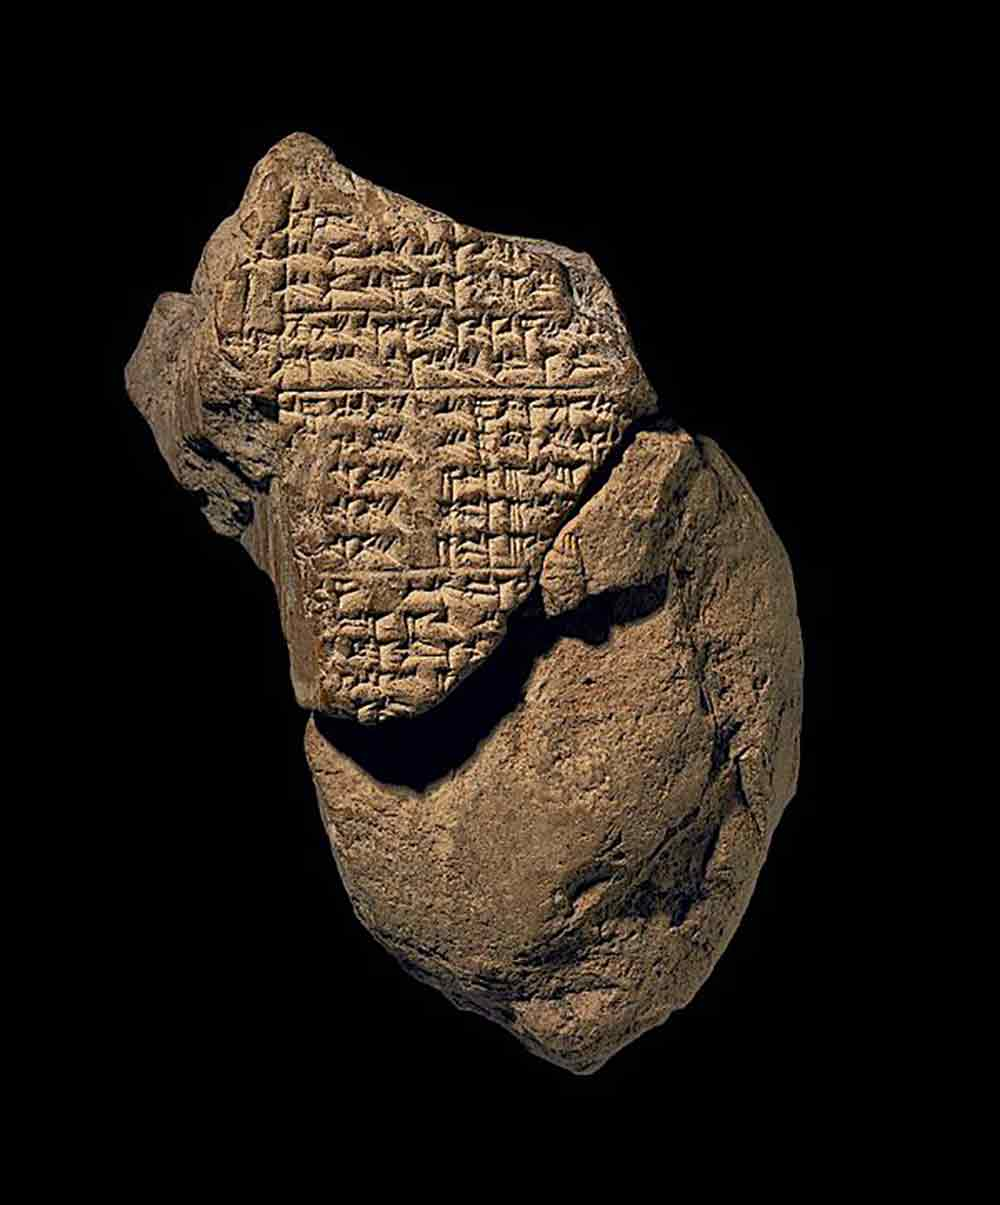 Astronomical-procedure-text-for-the-moon,-late-Babylonian-cuneiform-tablet-312---63-BC-I-Writer-Mariecor-I-WriterMariecor.com-1